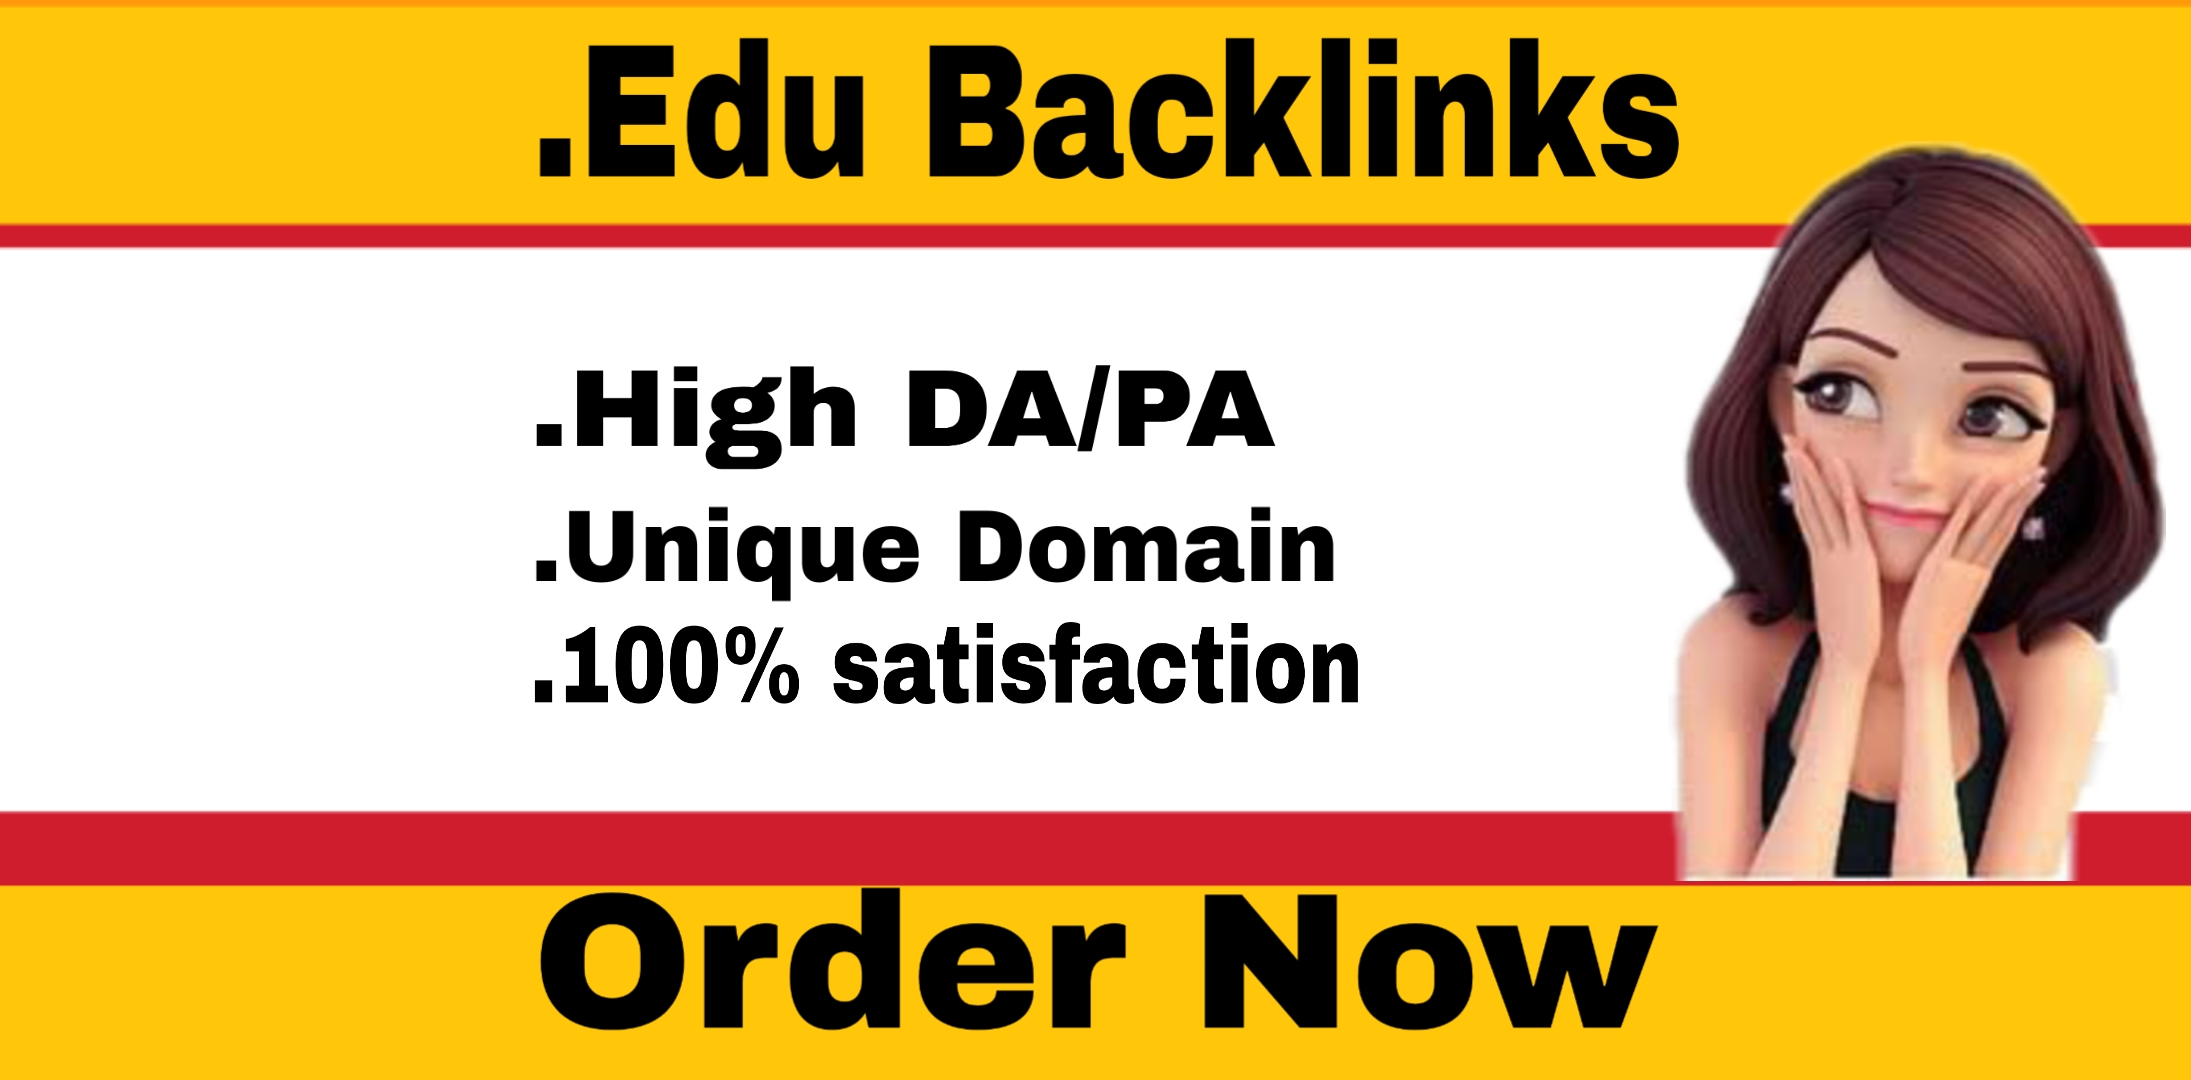 I will do 10 EDU Link building For SEO Back links